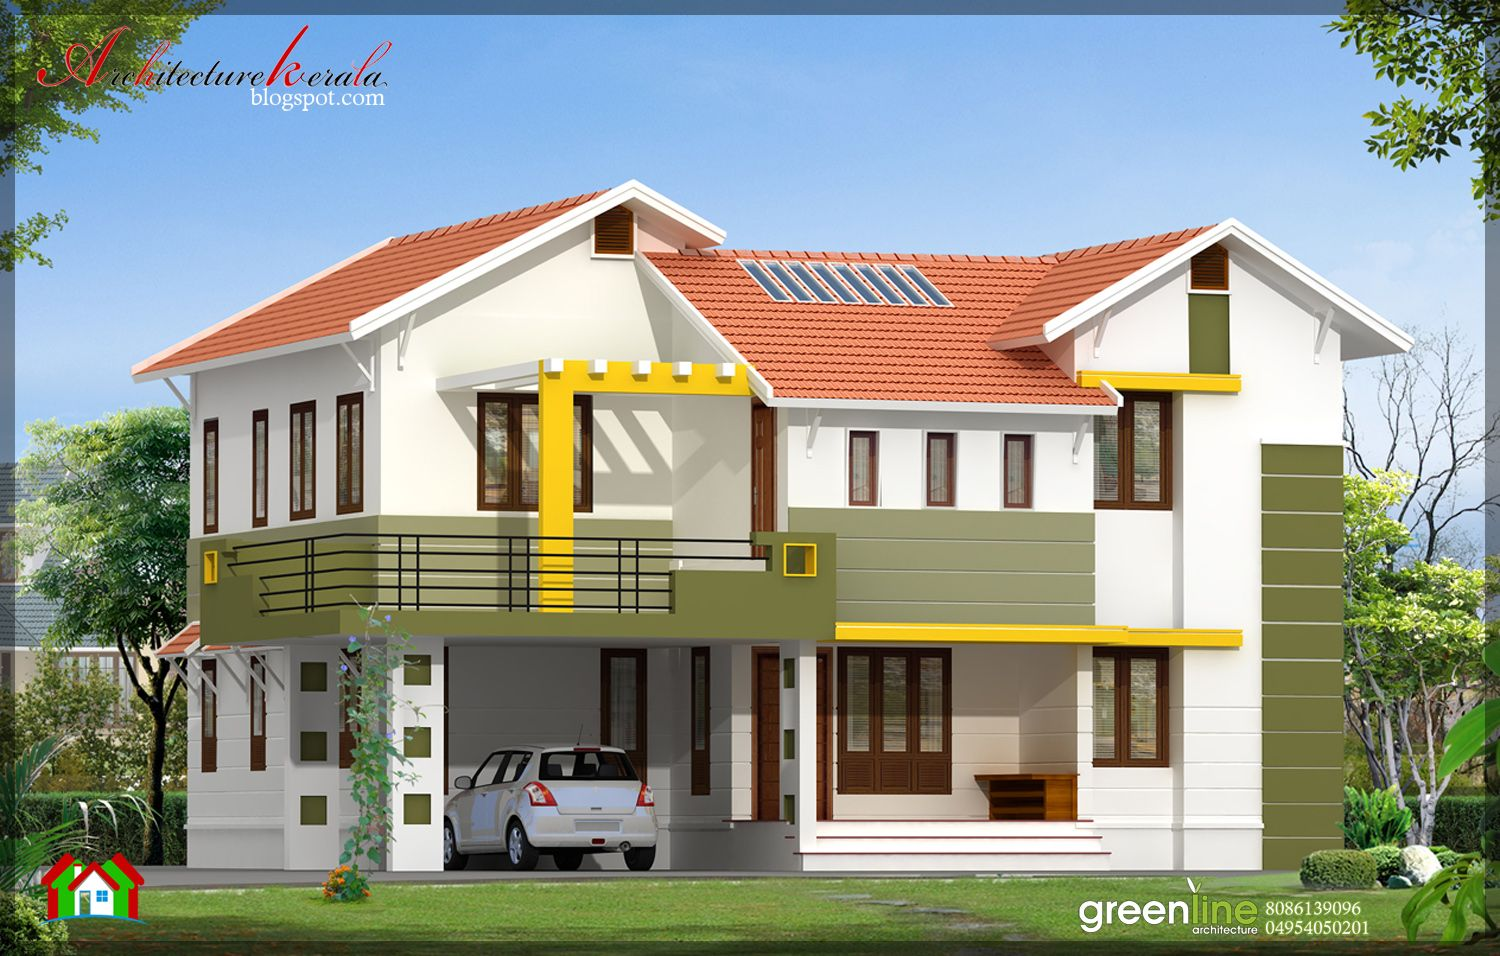 Architecture Kerala May 2012 Small House Design Philippines Simple House Design Kerala House Design